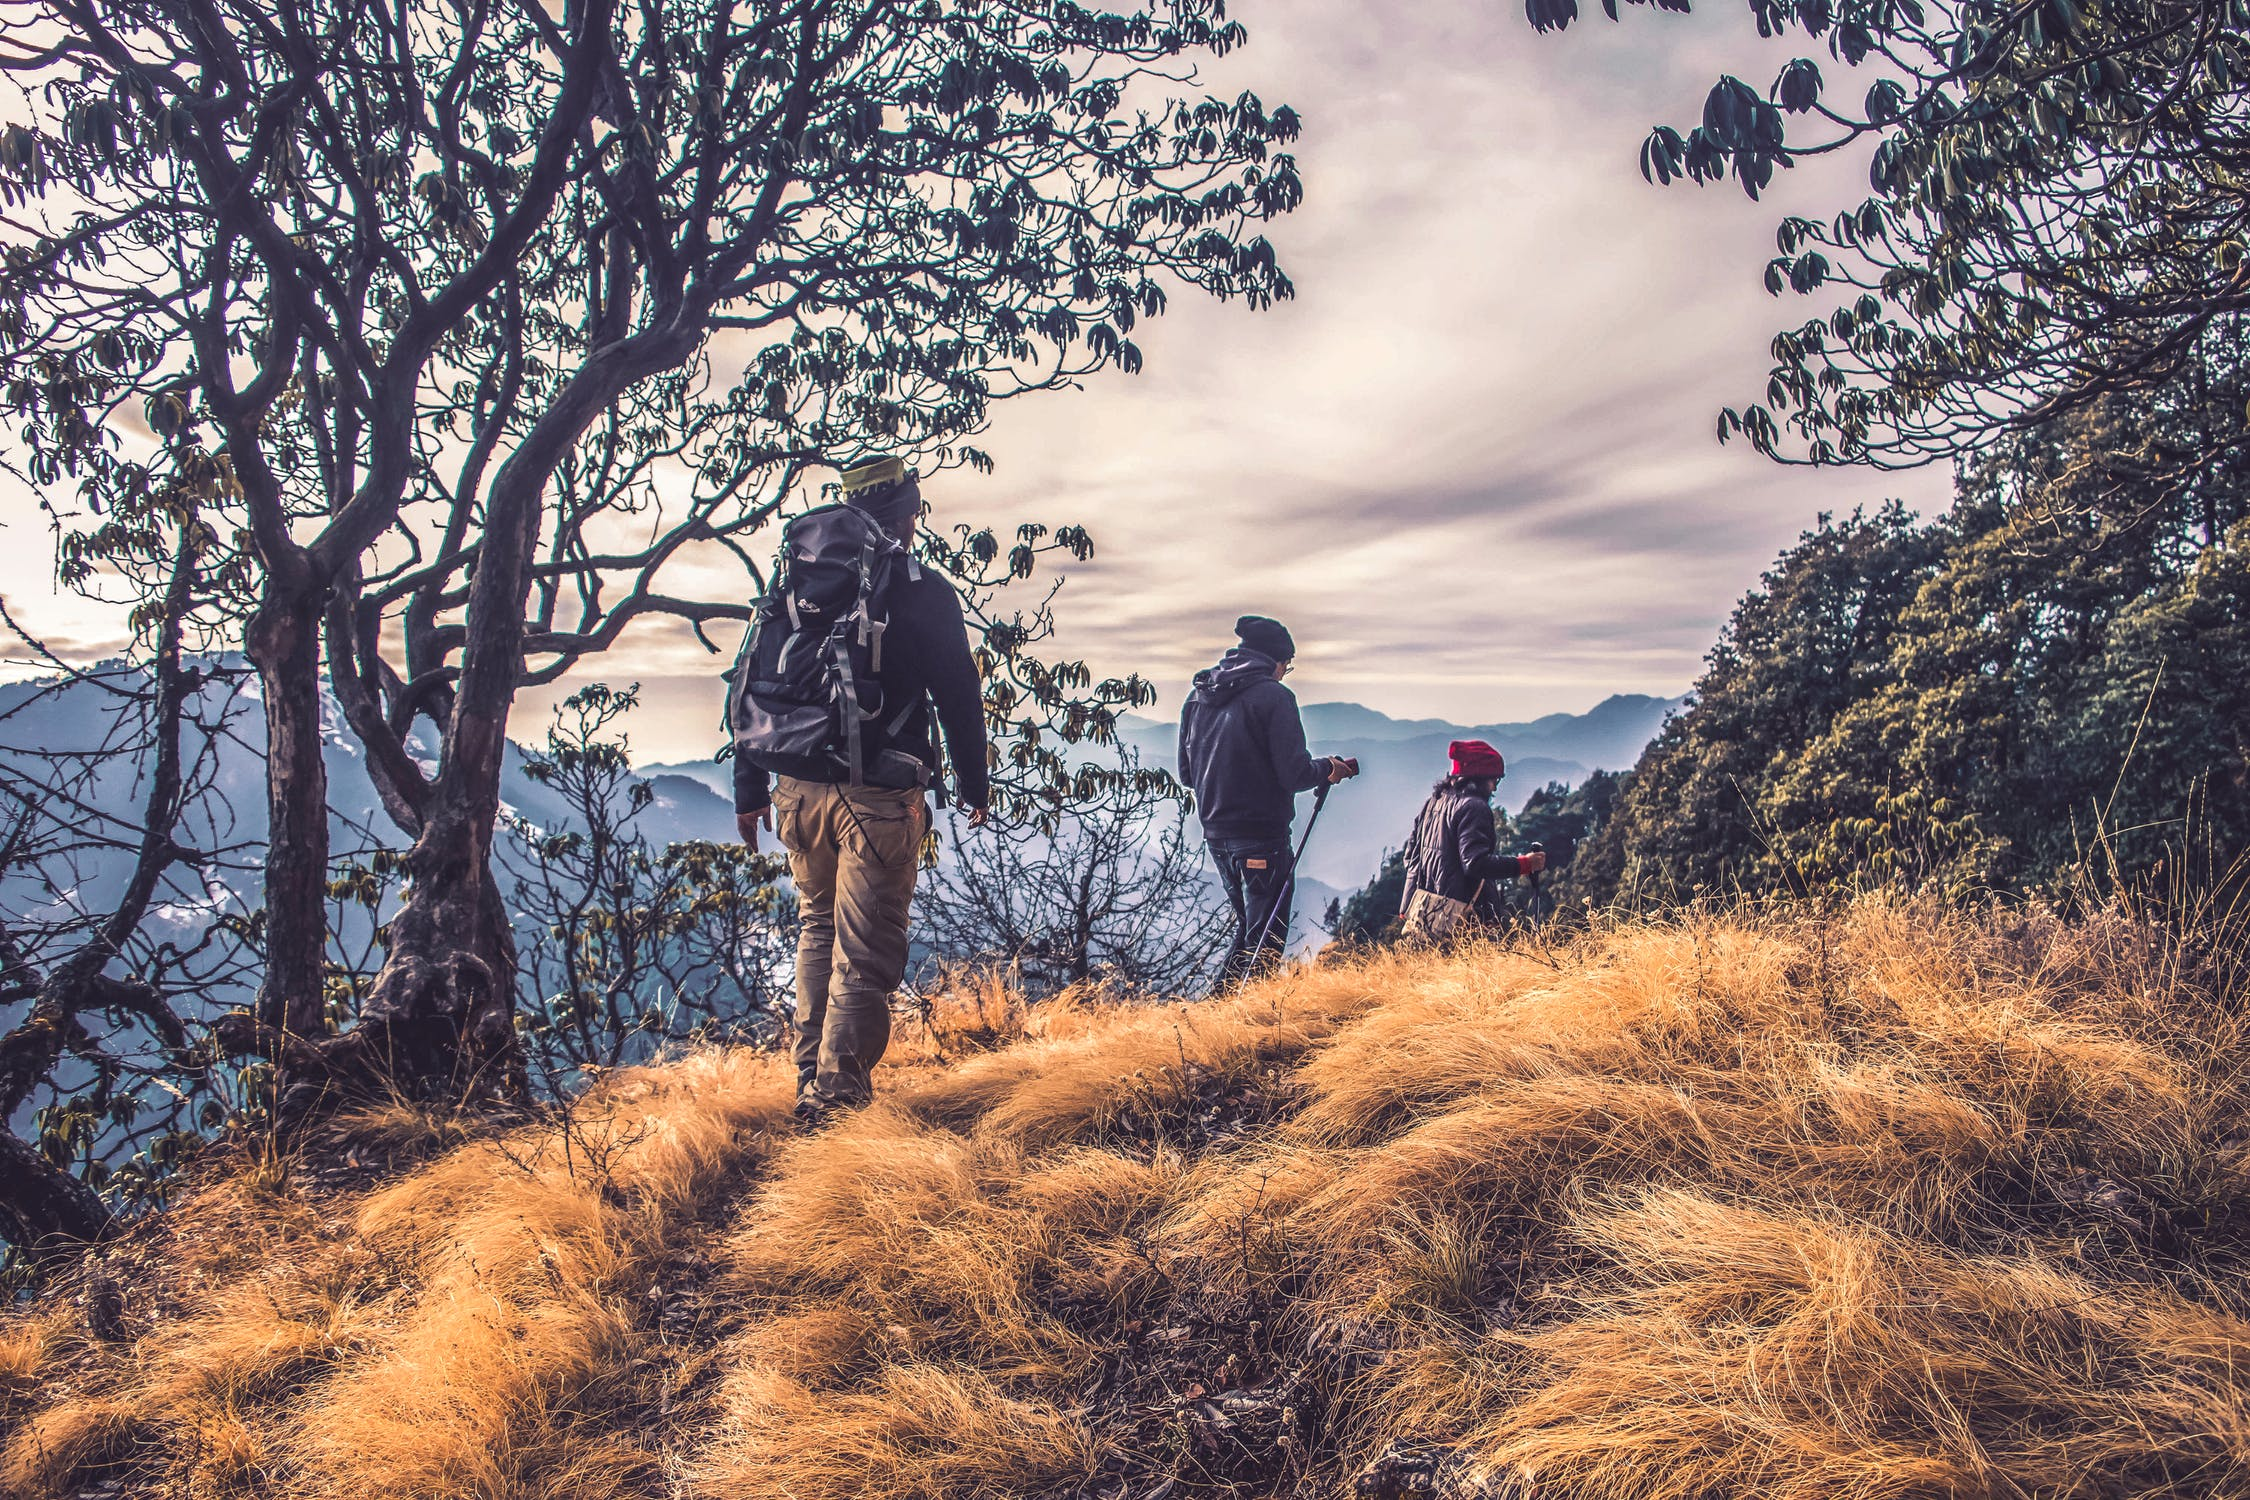 How to backpack for your first camping trip?